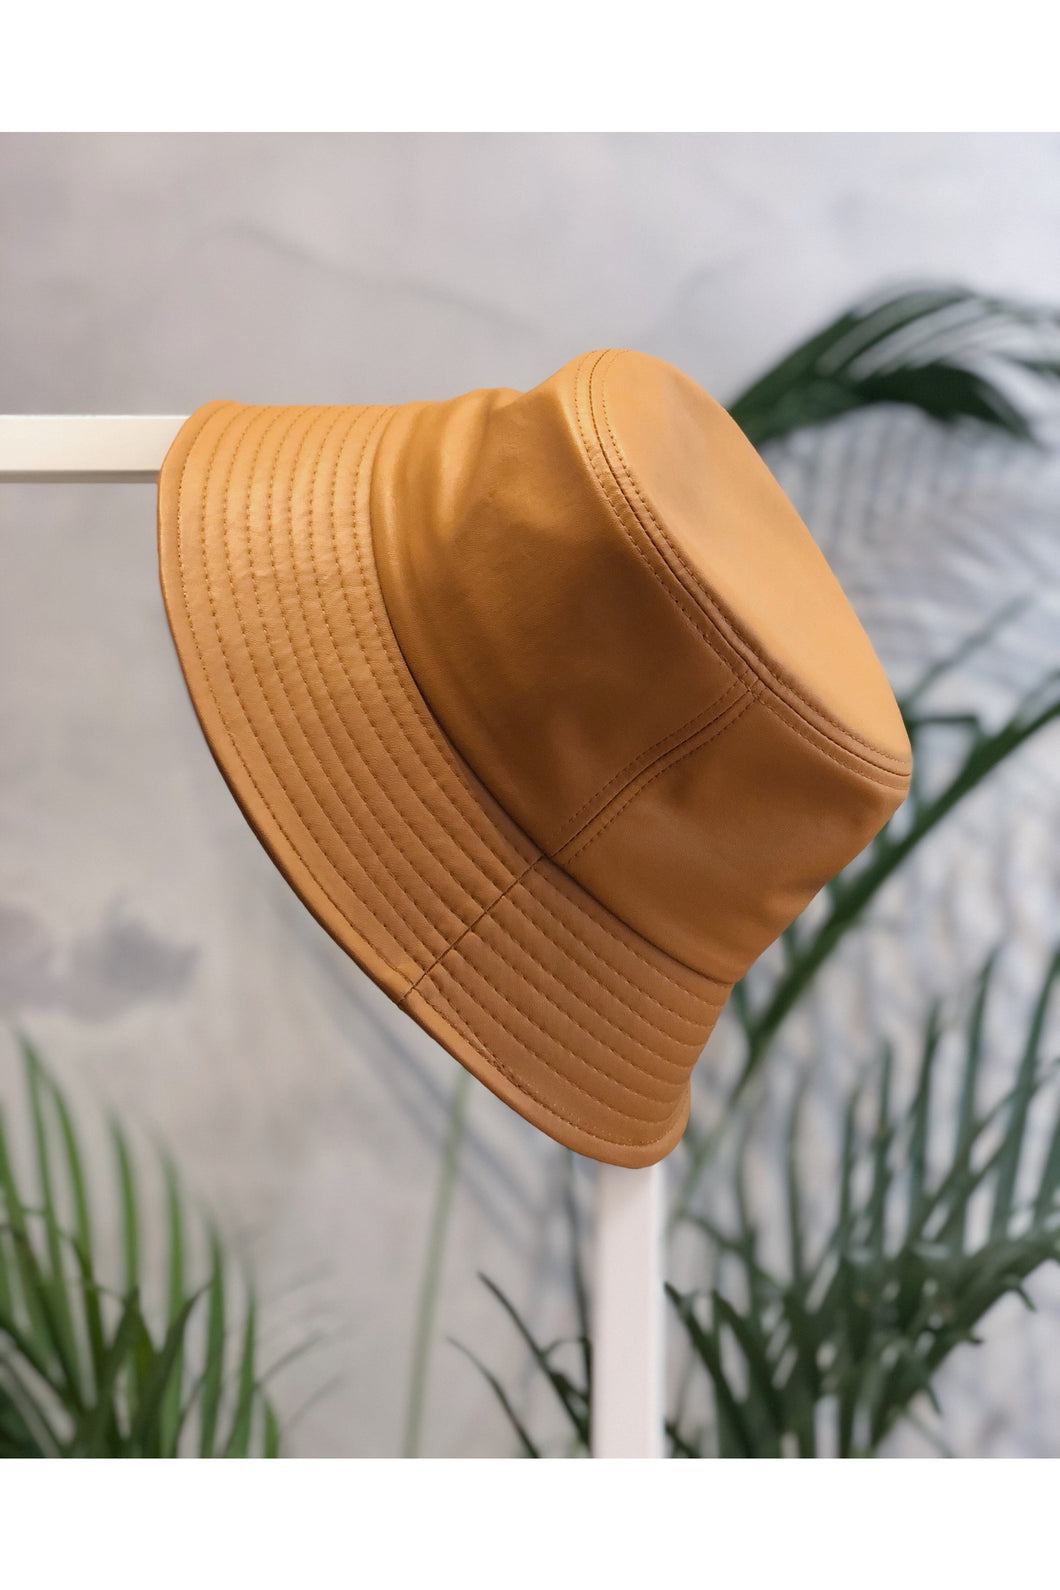 Mustard vegan leather oversized bucket hat_